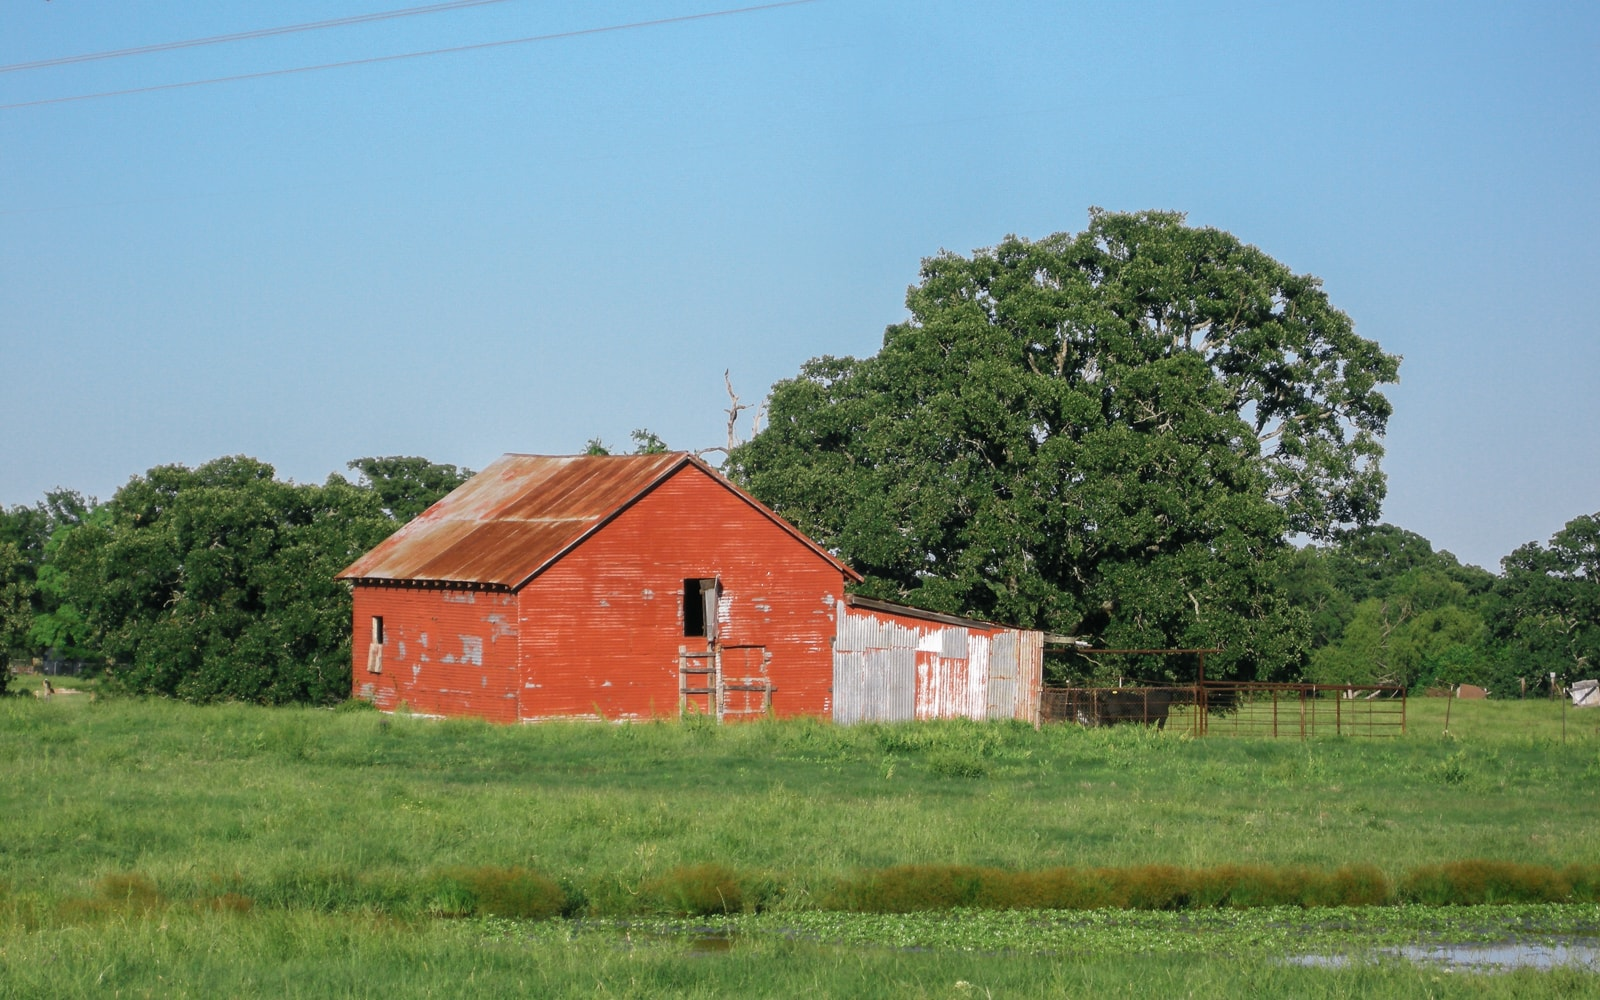 An old red barn in East Texas